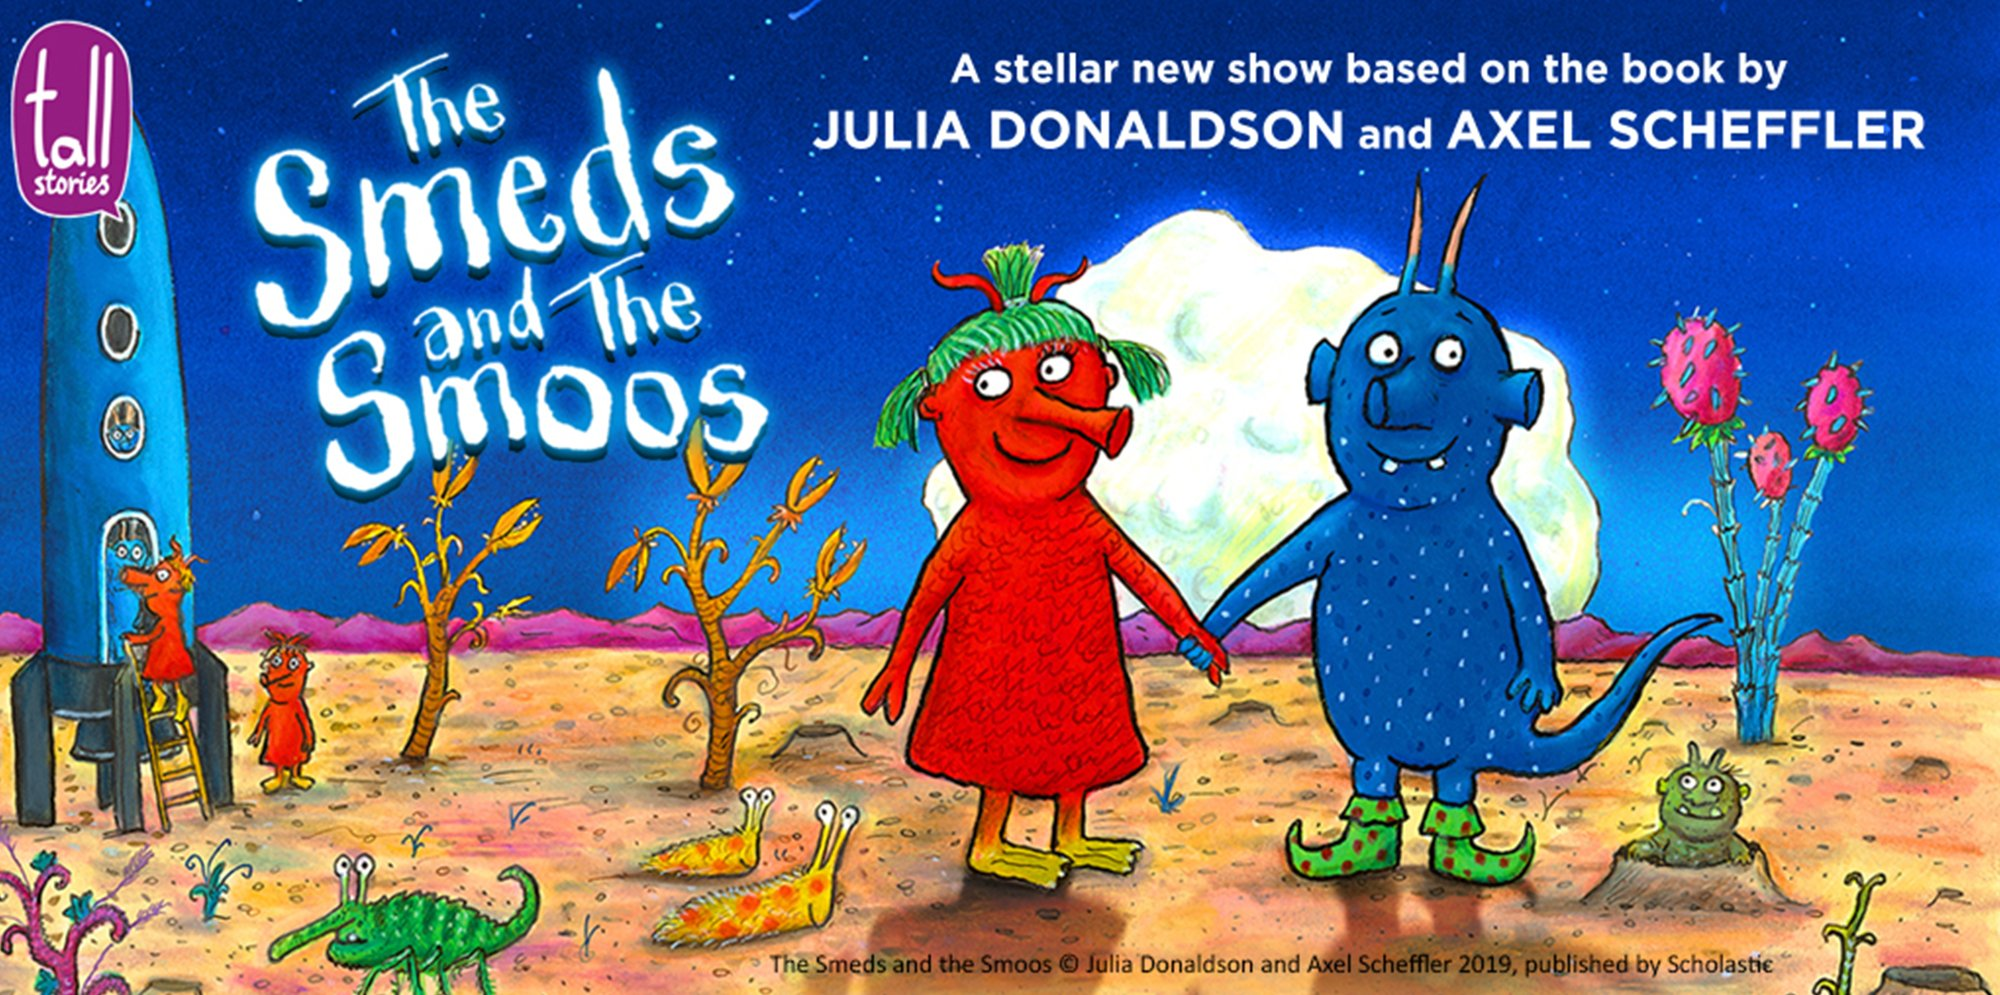 A cartoon image of two alien creatures holding hands with a rocket in the background, text says The Smeds and the Smoos a stellar new show based on the book by Julia Donaldson and Alex Scheffler